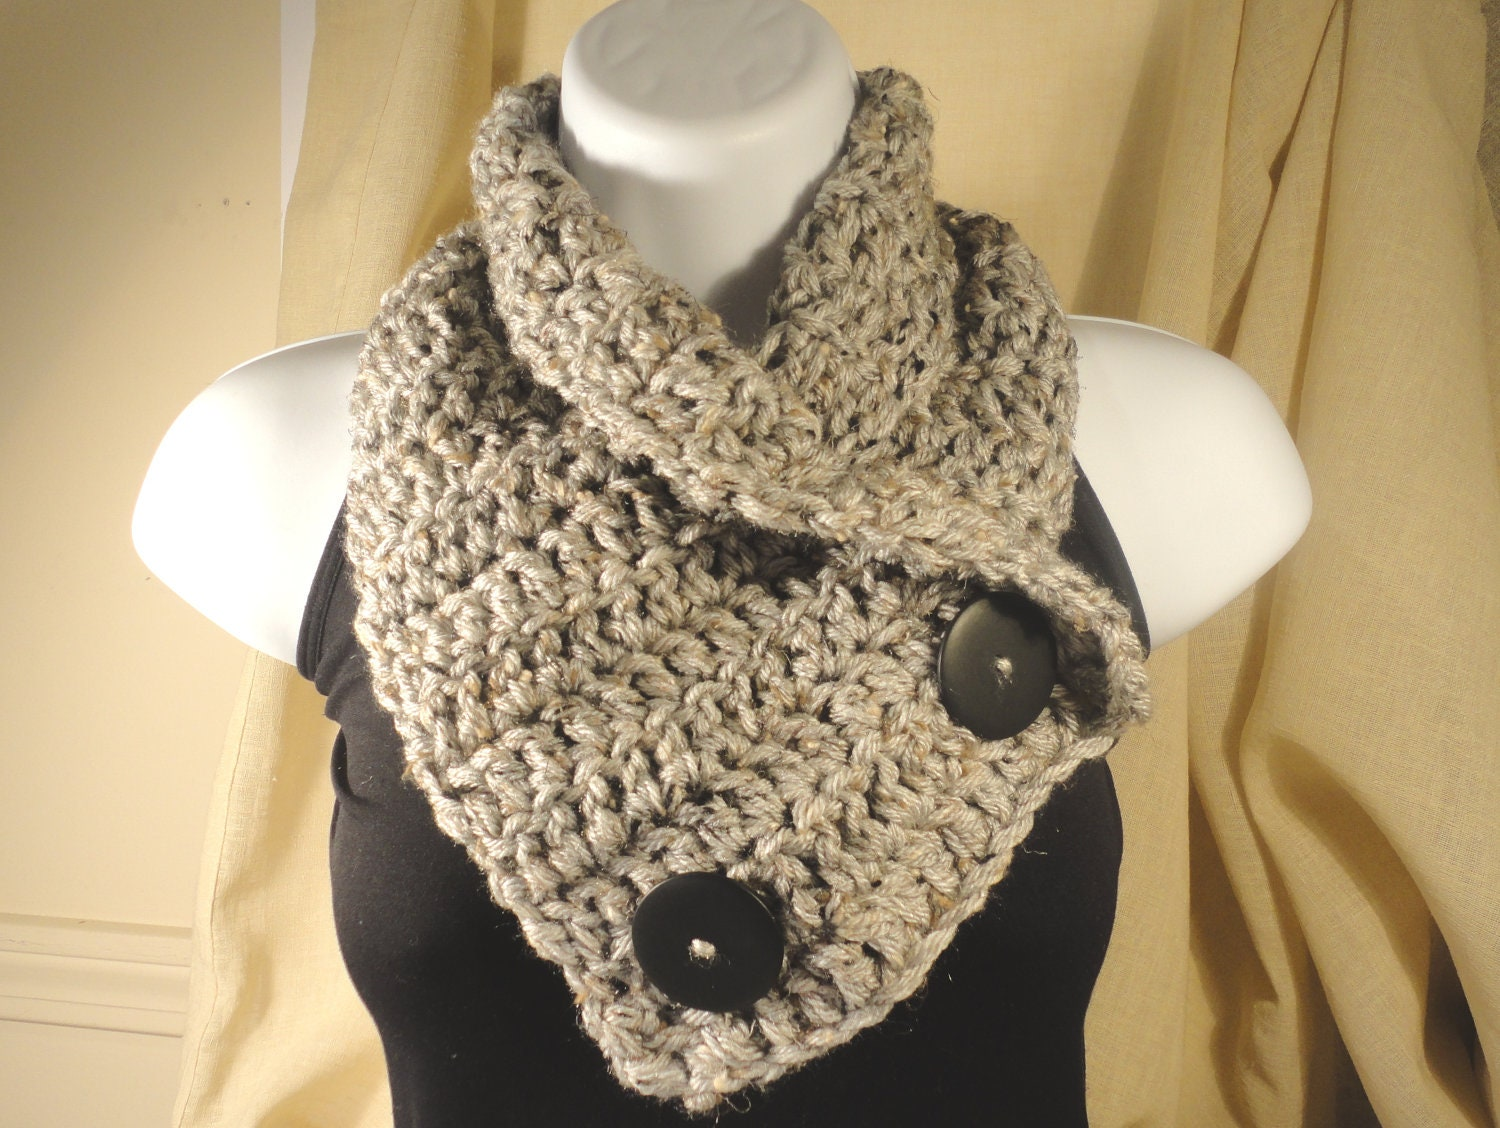 Crochet Scarf Cowl Neck Warmer with Buttons by VillaYarnDesigns Cowl Neck Scarves Crochet